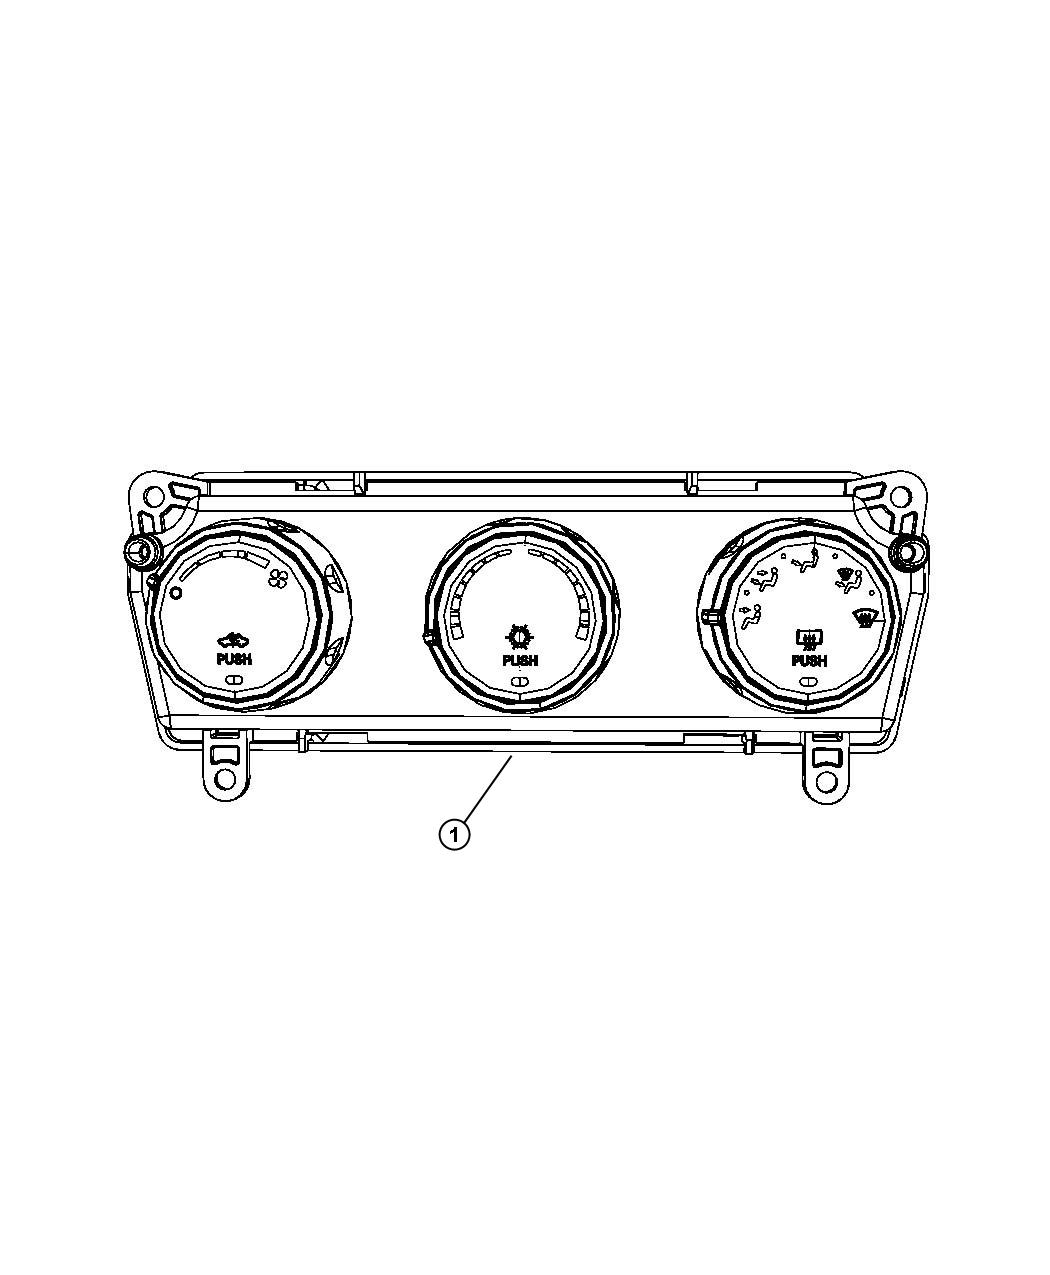 Jeep Liberty Control Used For A C And Heater Air